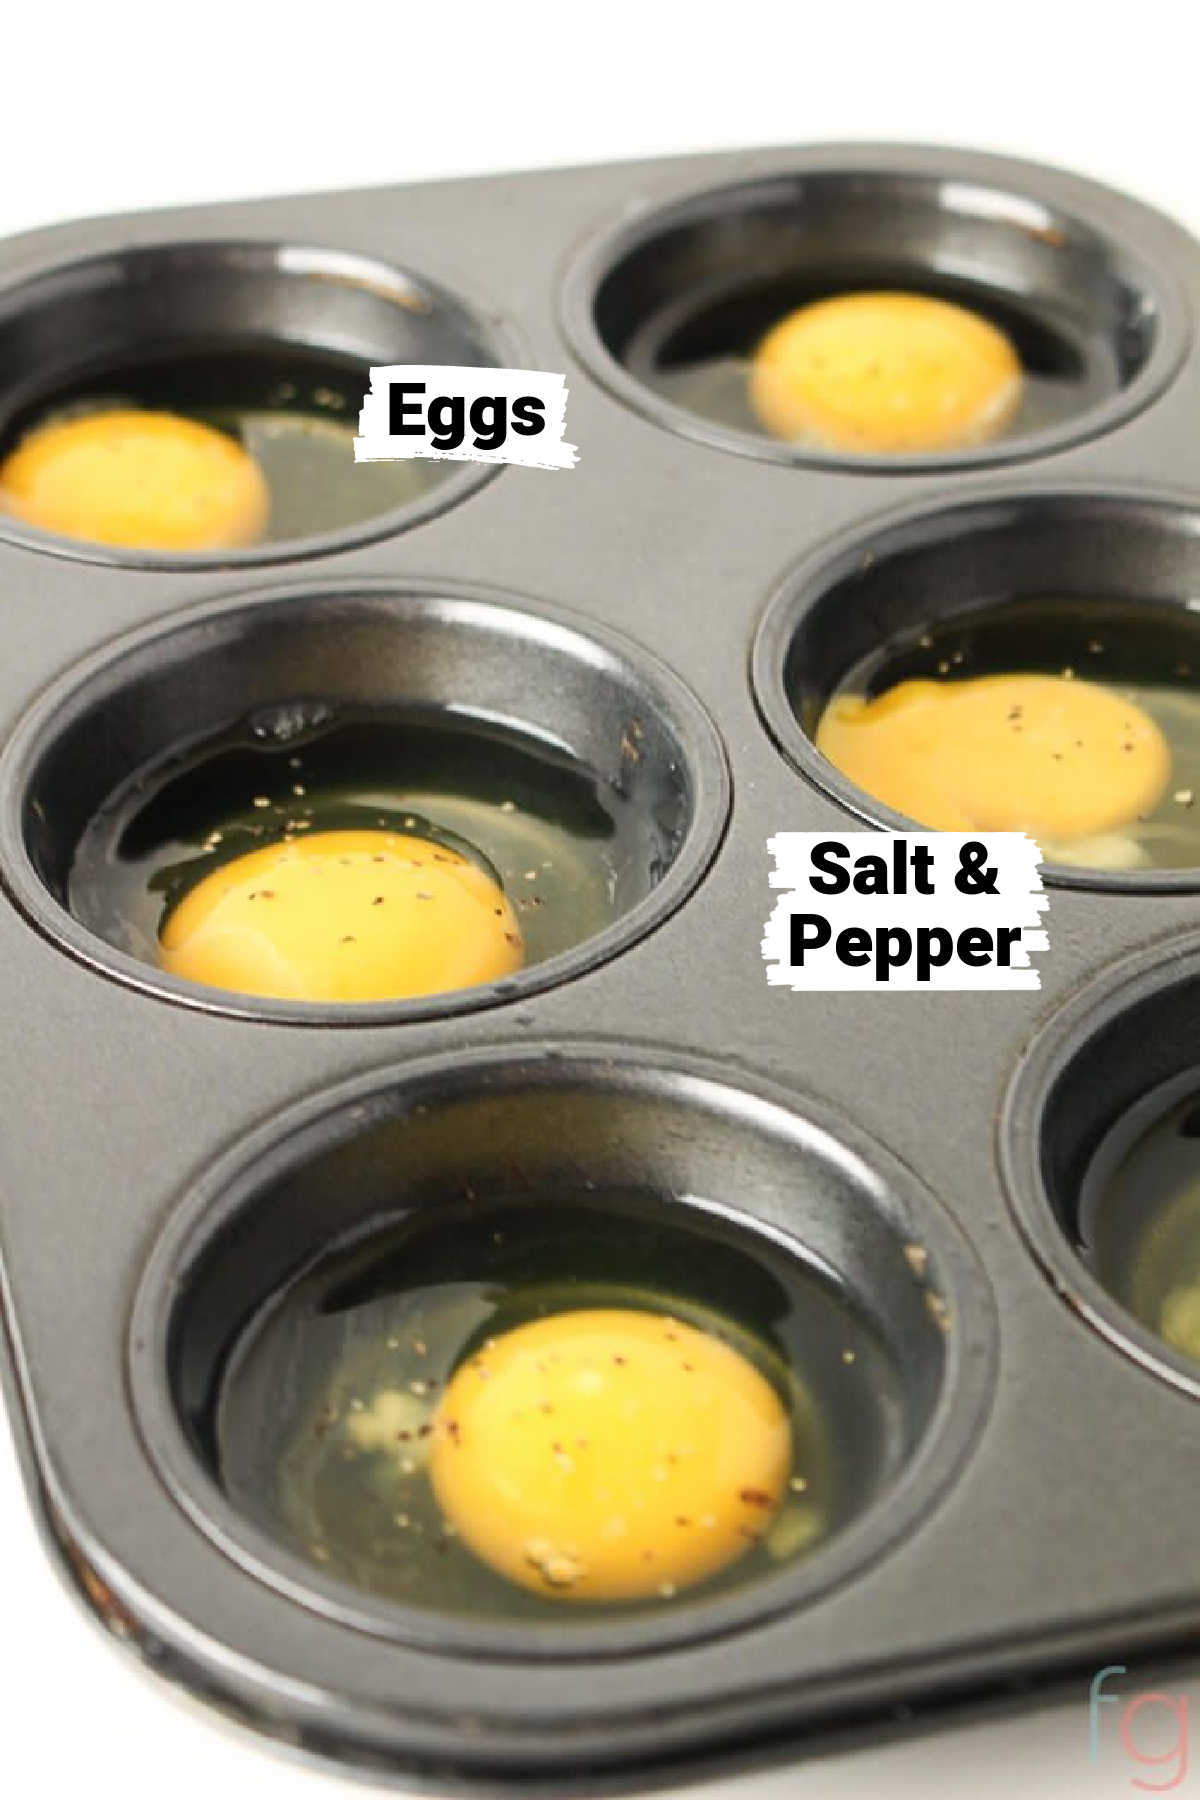 ingredients showing the cracked eggs in a muffin tin and salt and pepper with labels.